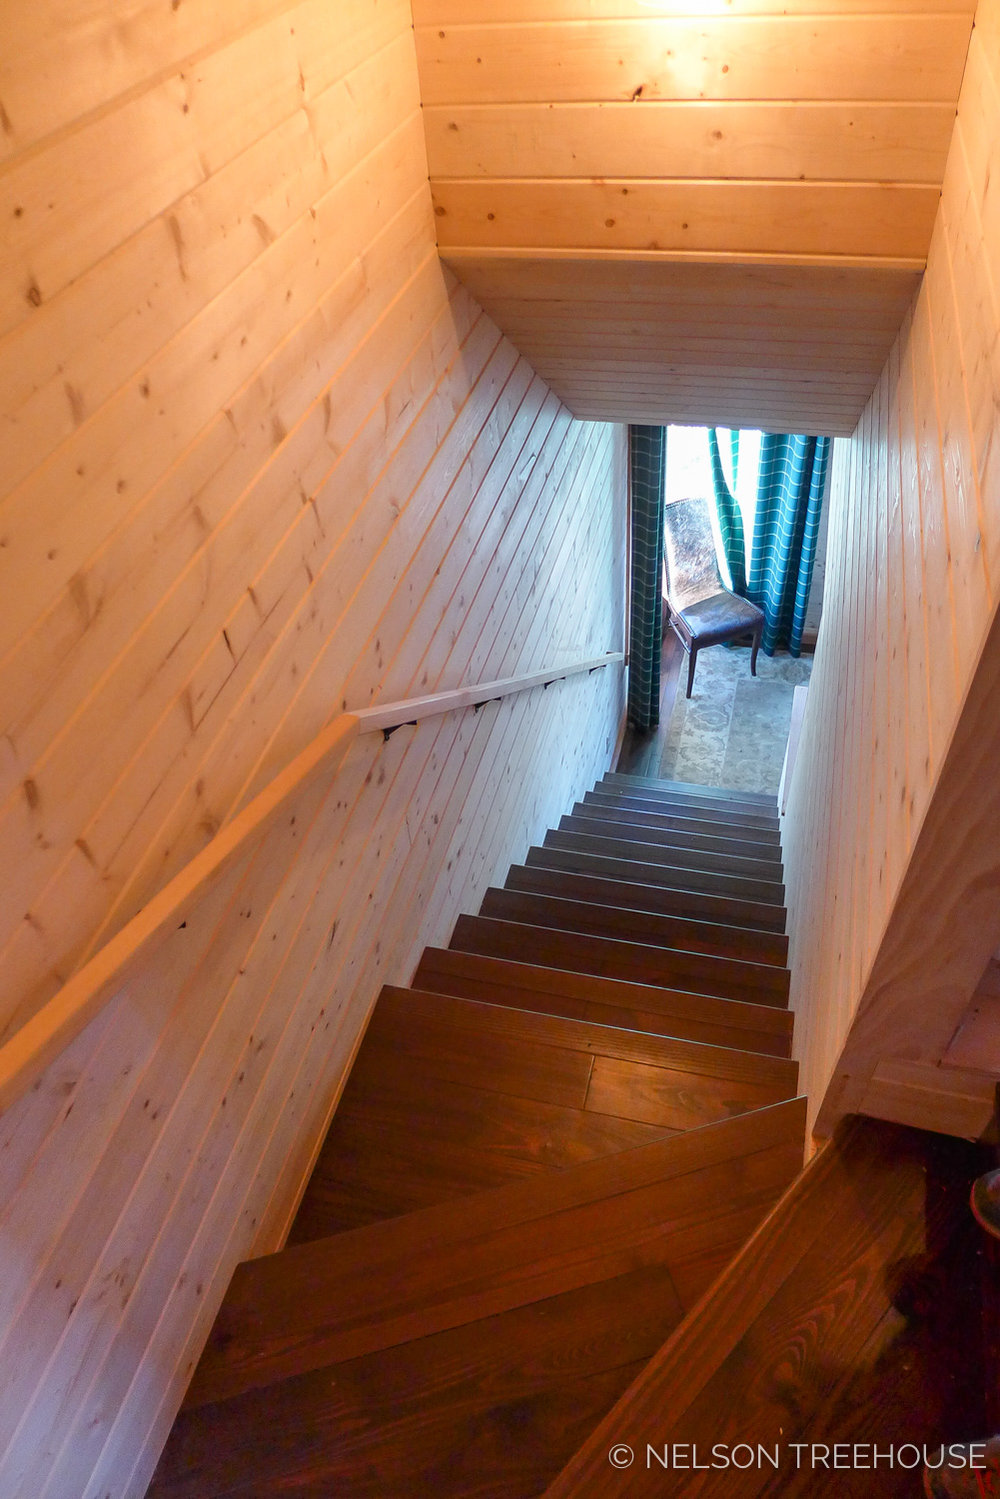 Super Spy Treehouse - Nelson Treehouse 2018 - Staircase to bedroom